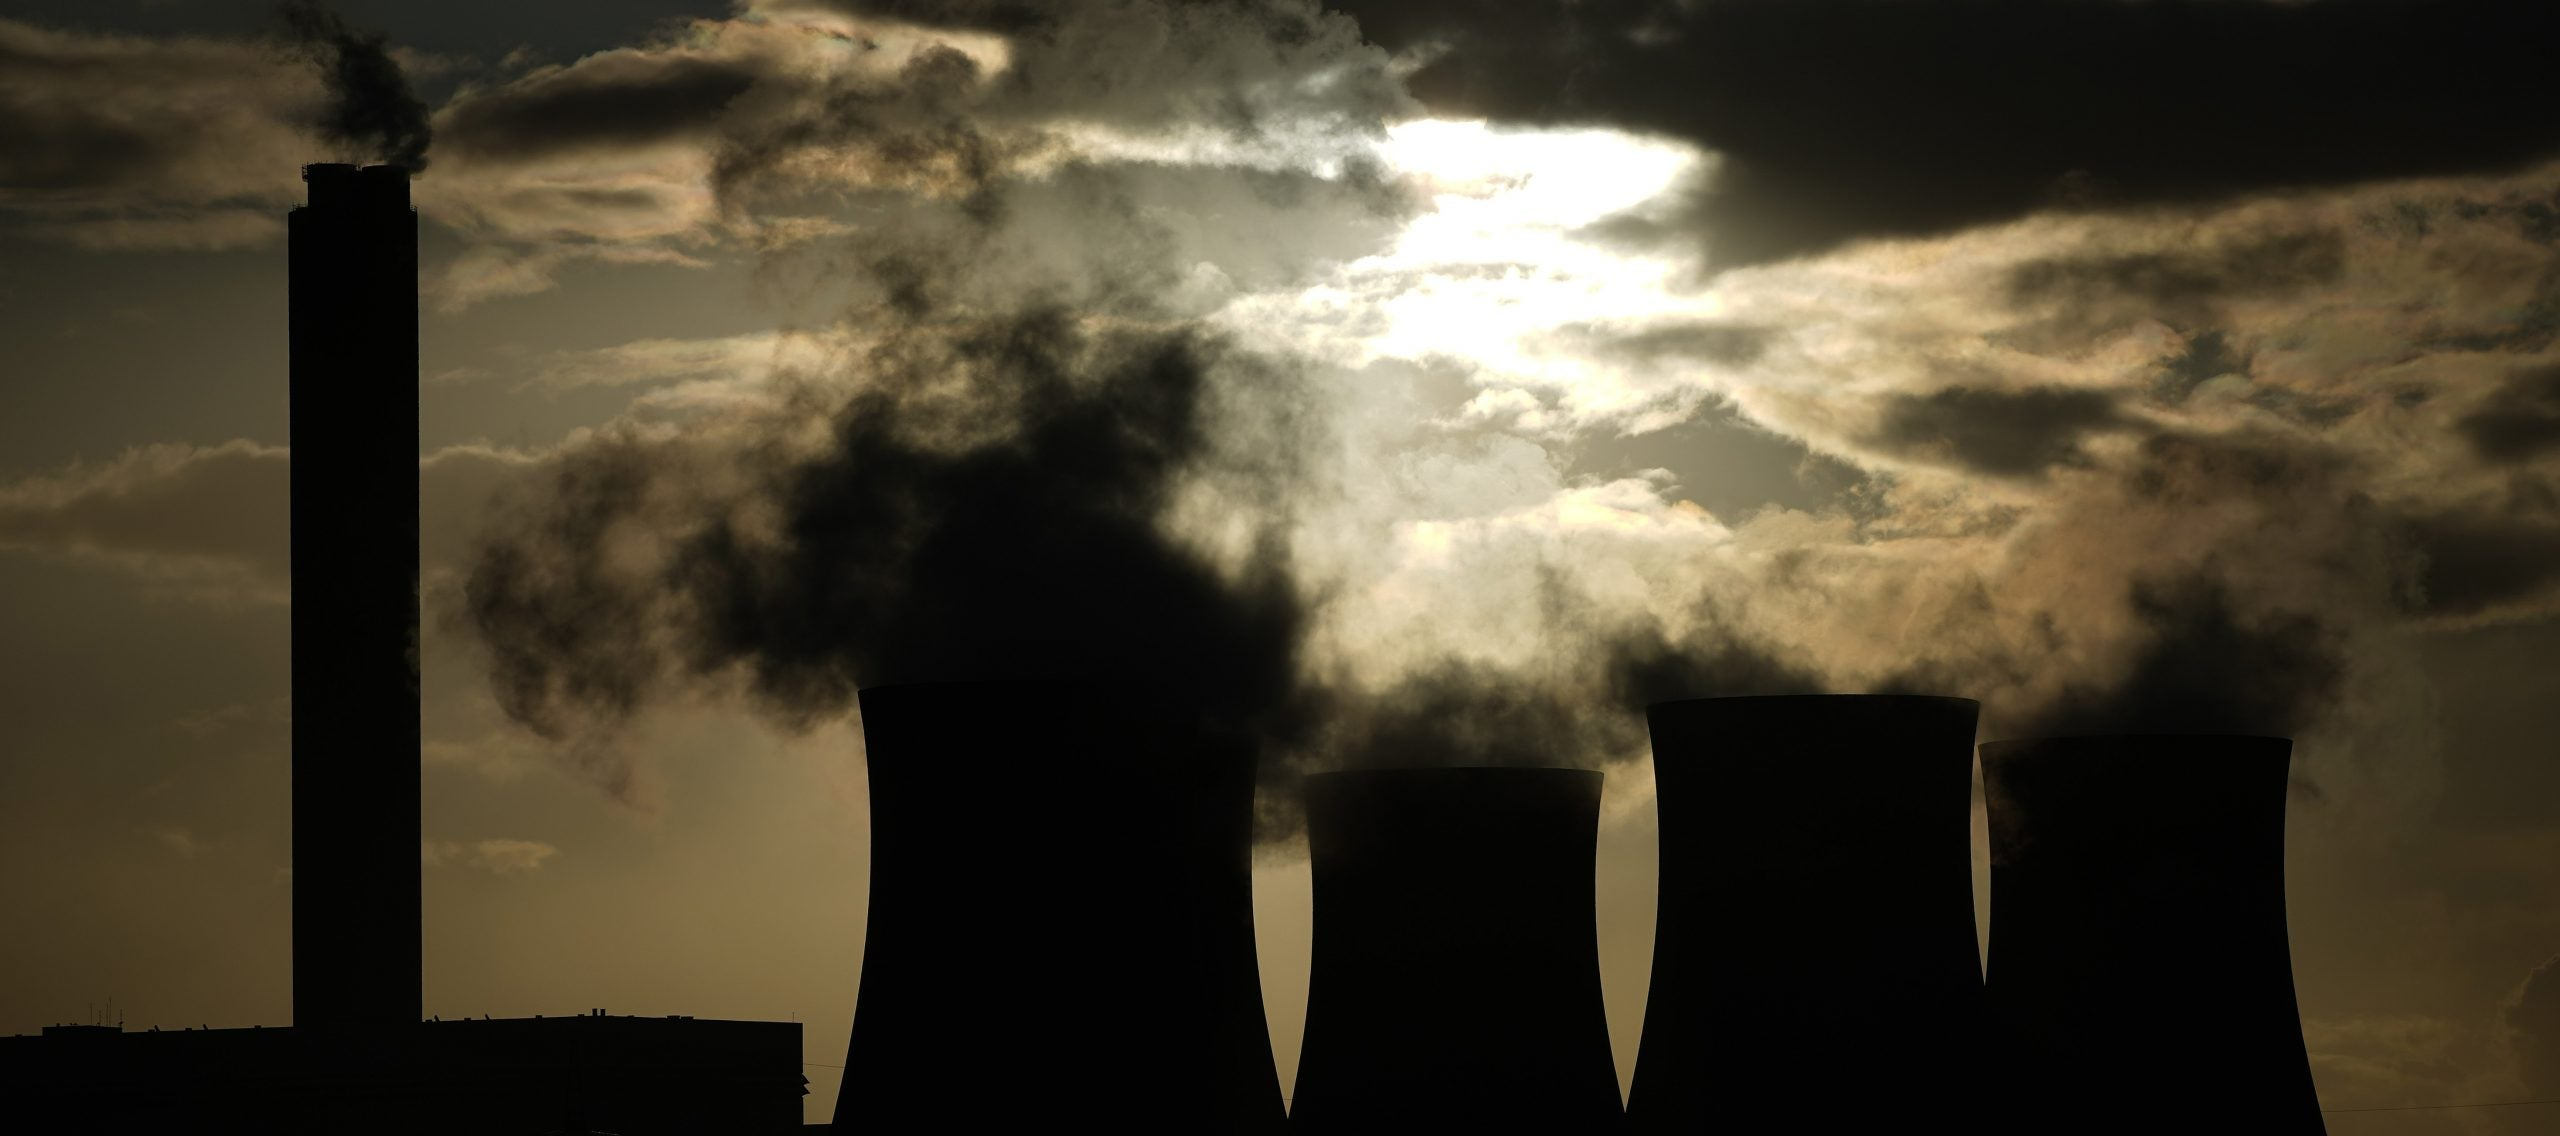 How the G20 is investing more in fossil fuels than in green energy